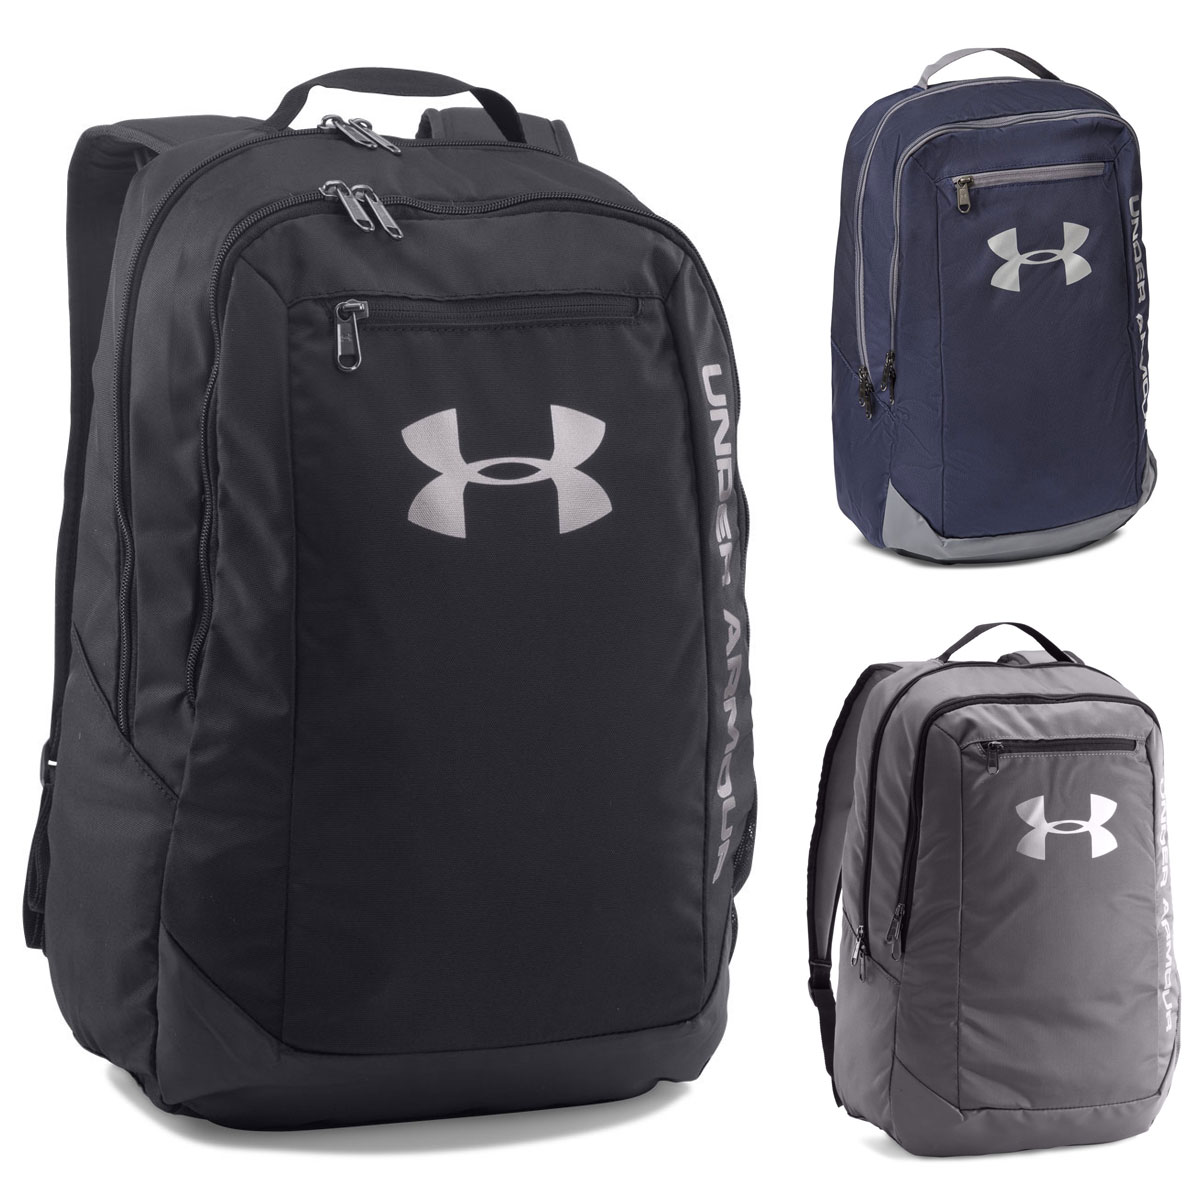 e6ff6b10f8 Details about Under Armour 2019 UA Hustle Backpack LDWR Rucksack School Gym  Bag